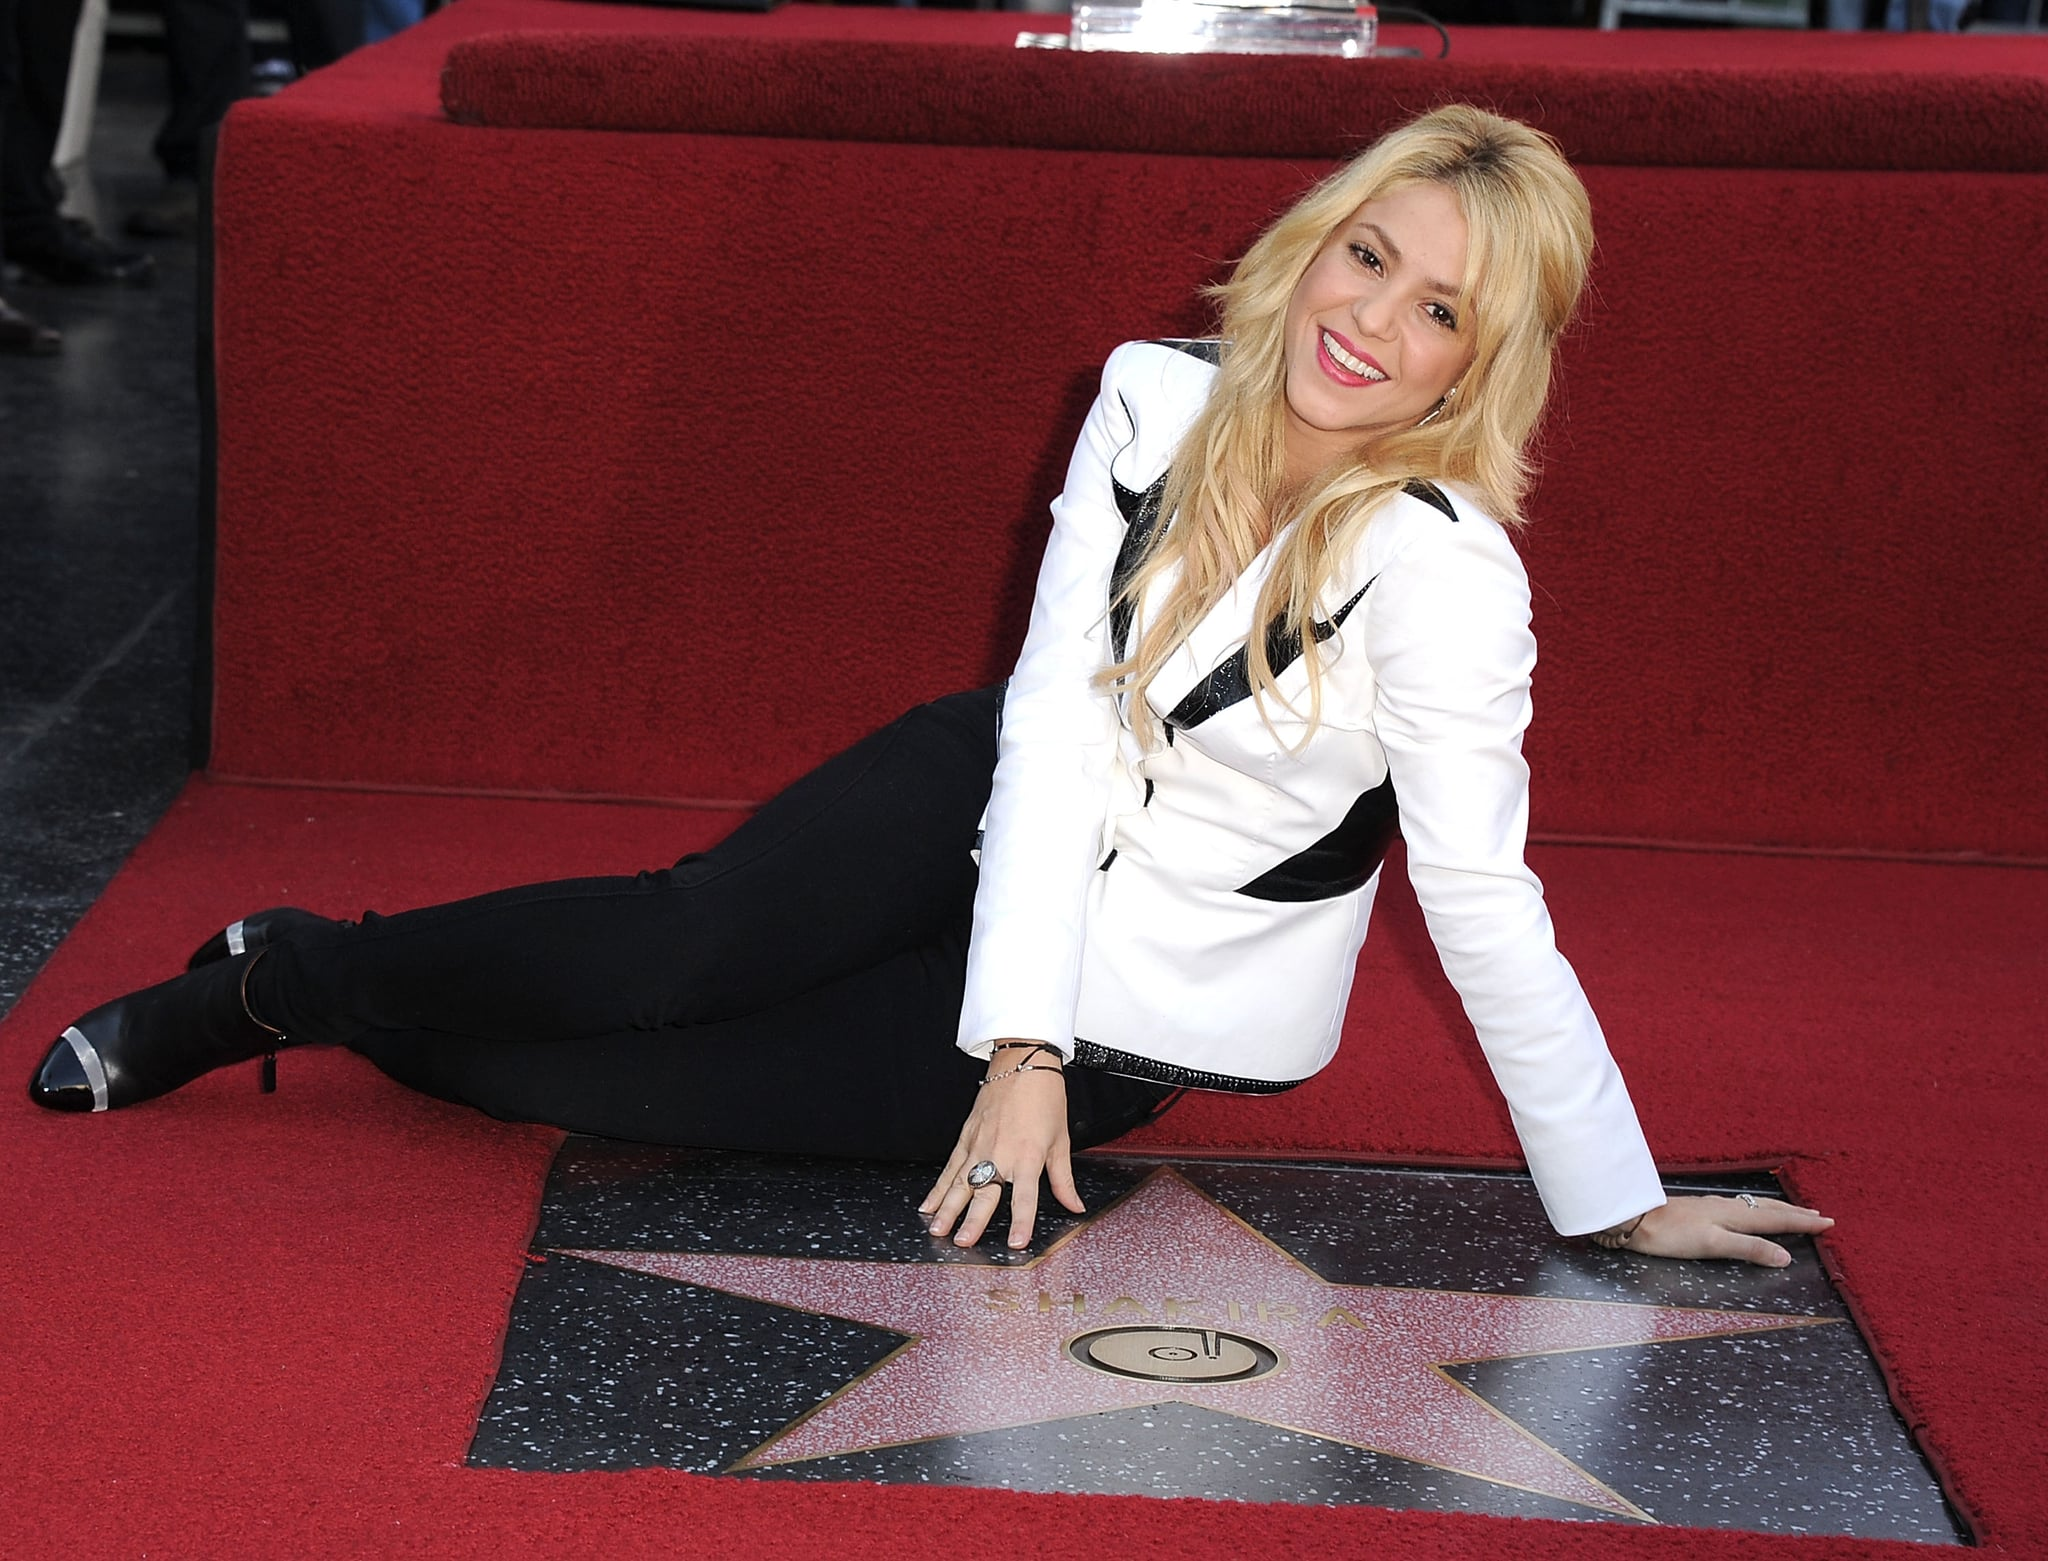 HOLLYWOOD, CA - NOVEMBER 08:  Shakira attends the Shakira Hollywood Walk Of Fame Ceremony on November 8, 2011 in Hollywood, California.  (Photo by Steve Granitz/WireImage)